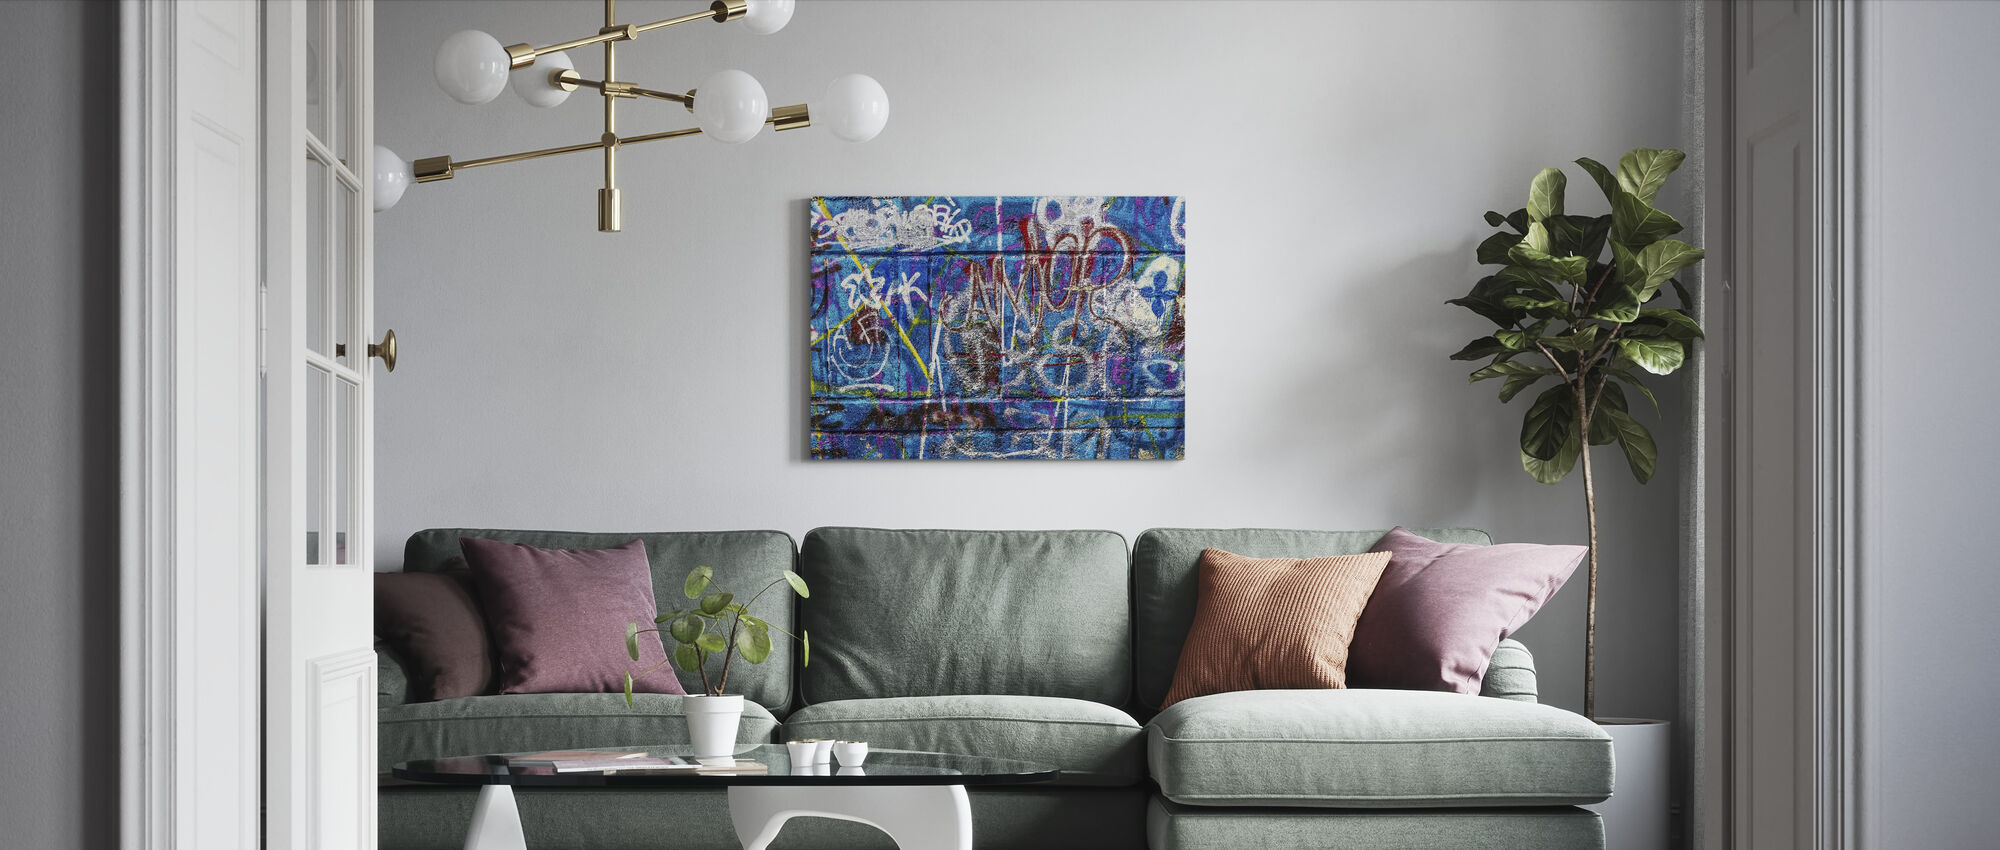 Wall Street Art - Canvas print - Living Room